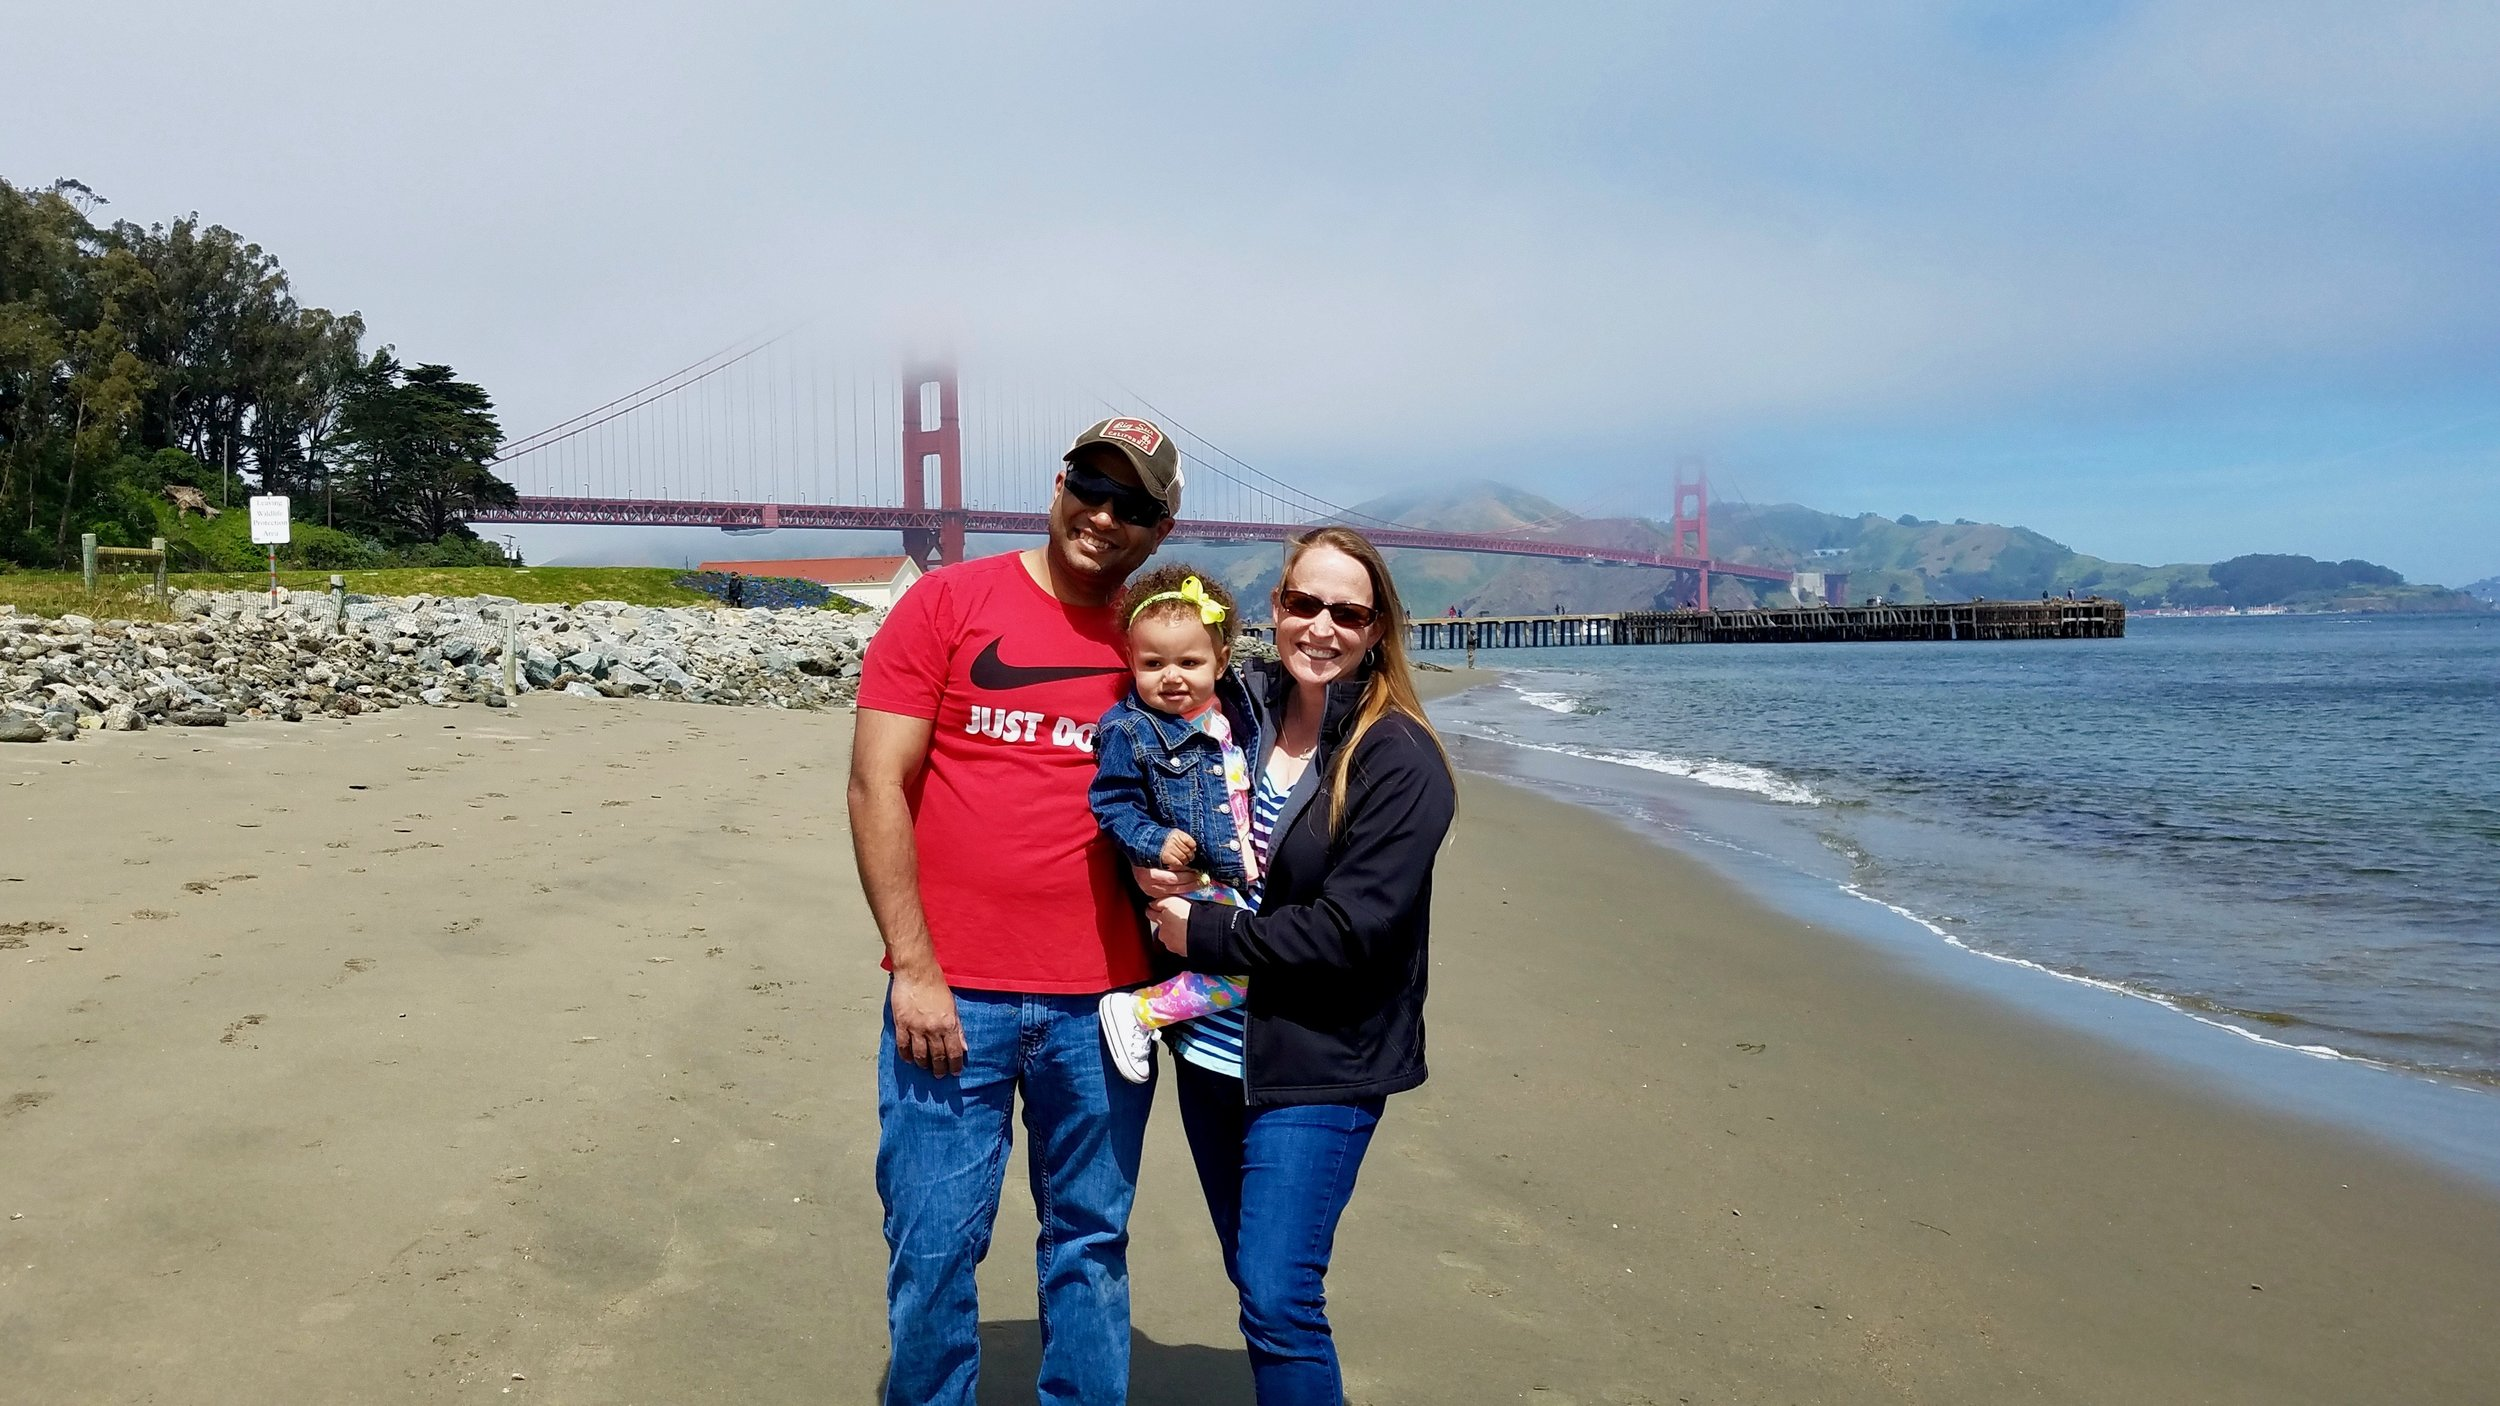 Family shot with Golden State Bridge